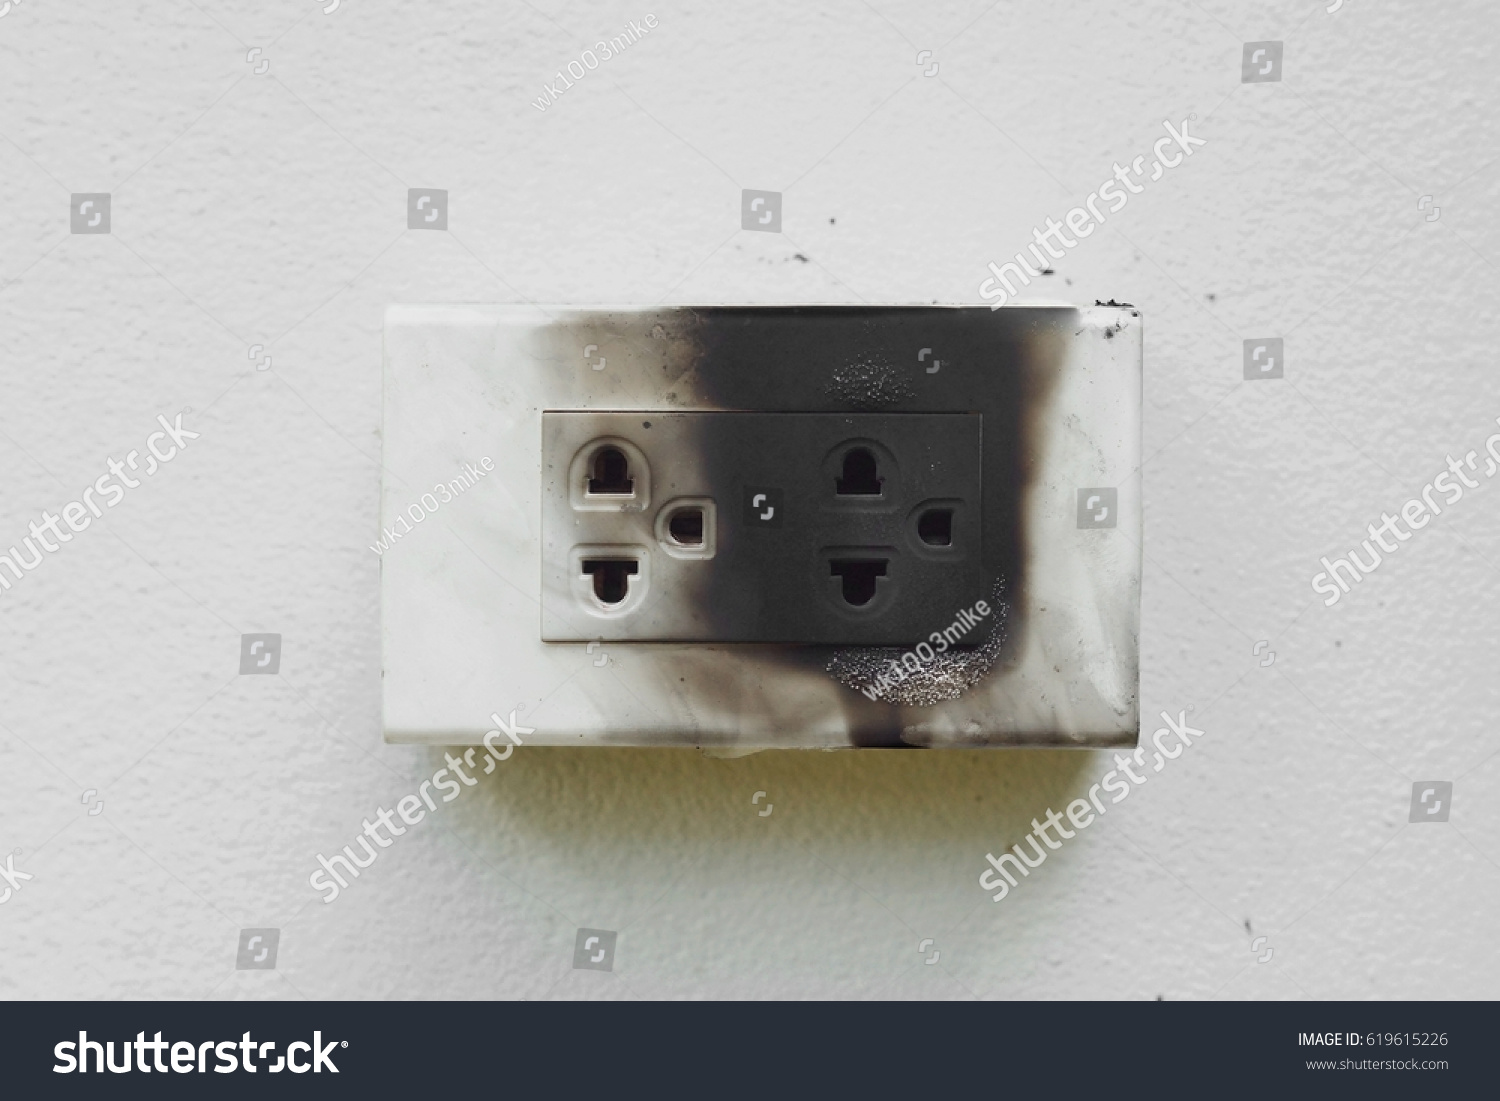 Electricity Short Circuit Electrical Failure Resulting Stock Photo ...